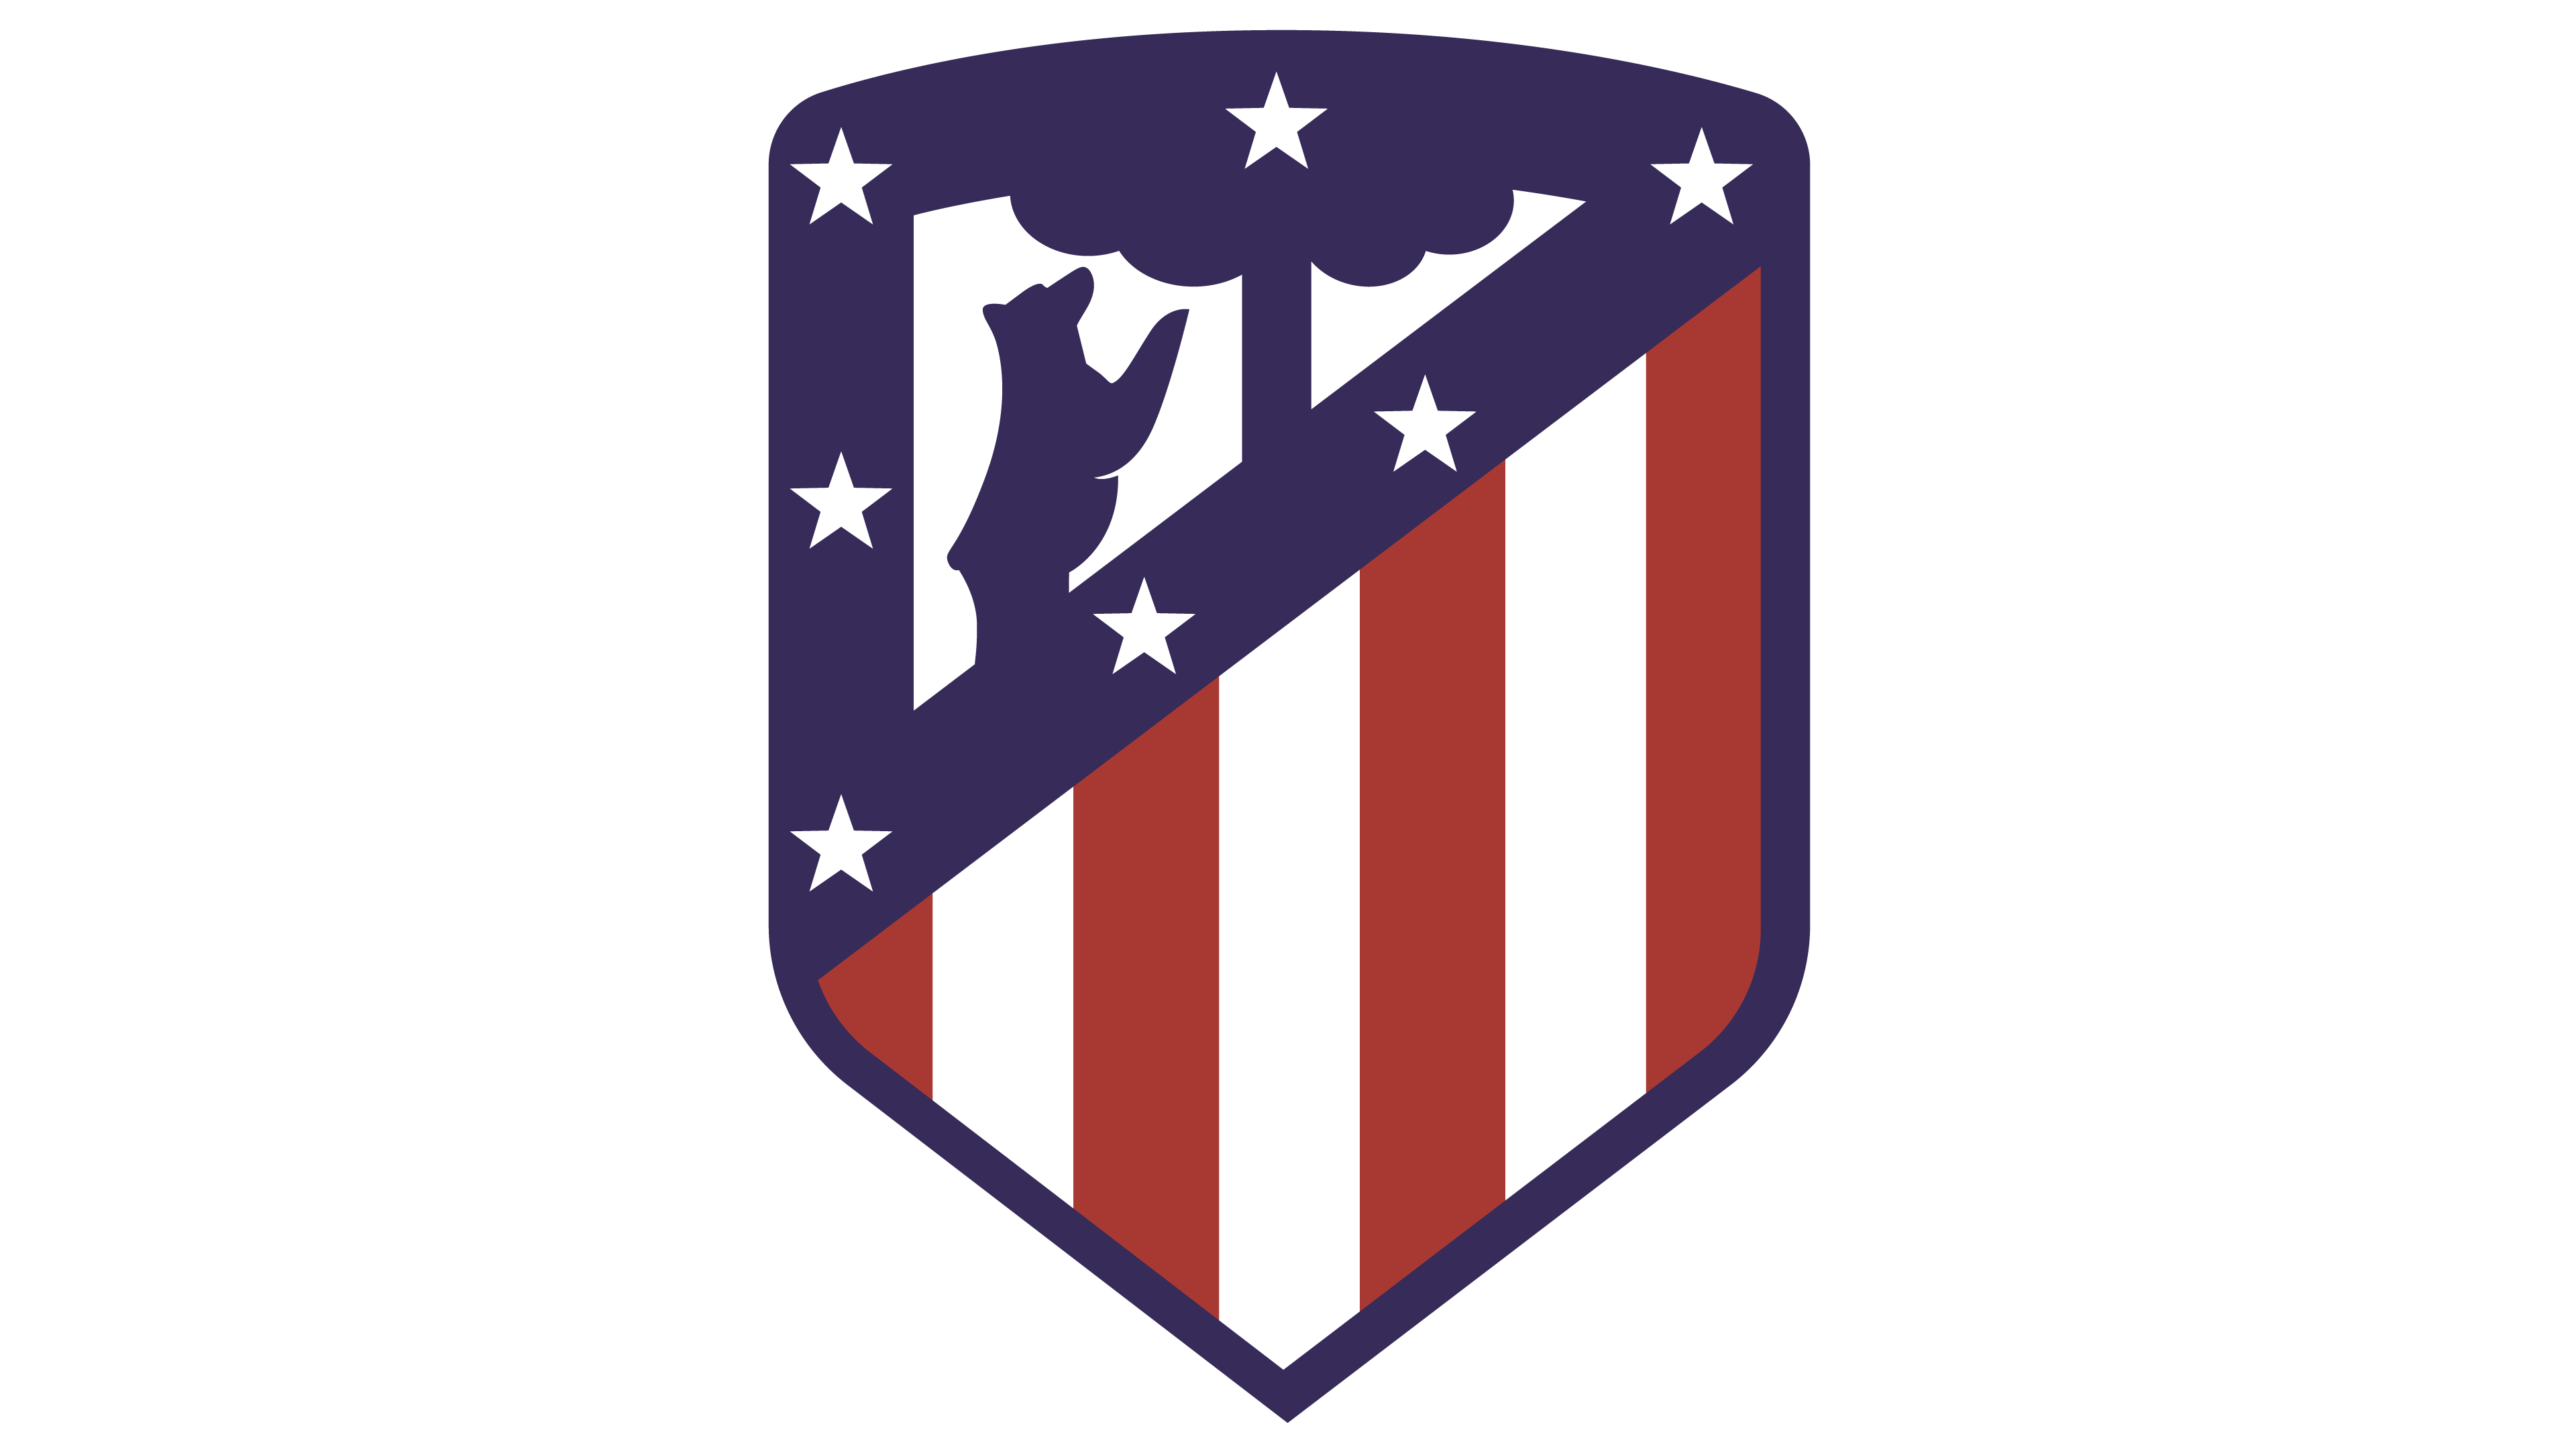 atletico-madrid-logopng